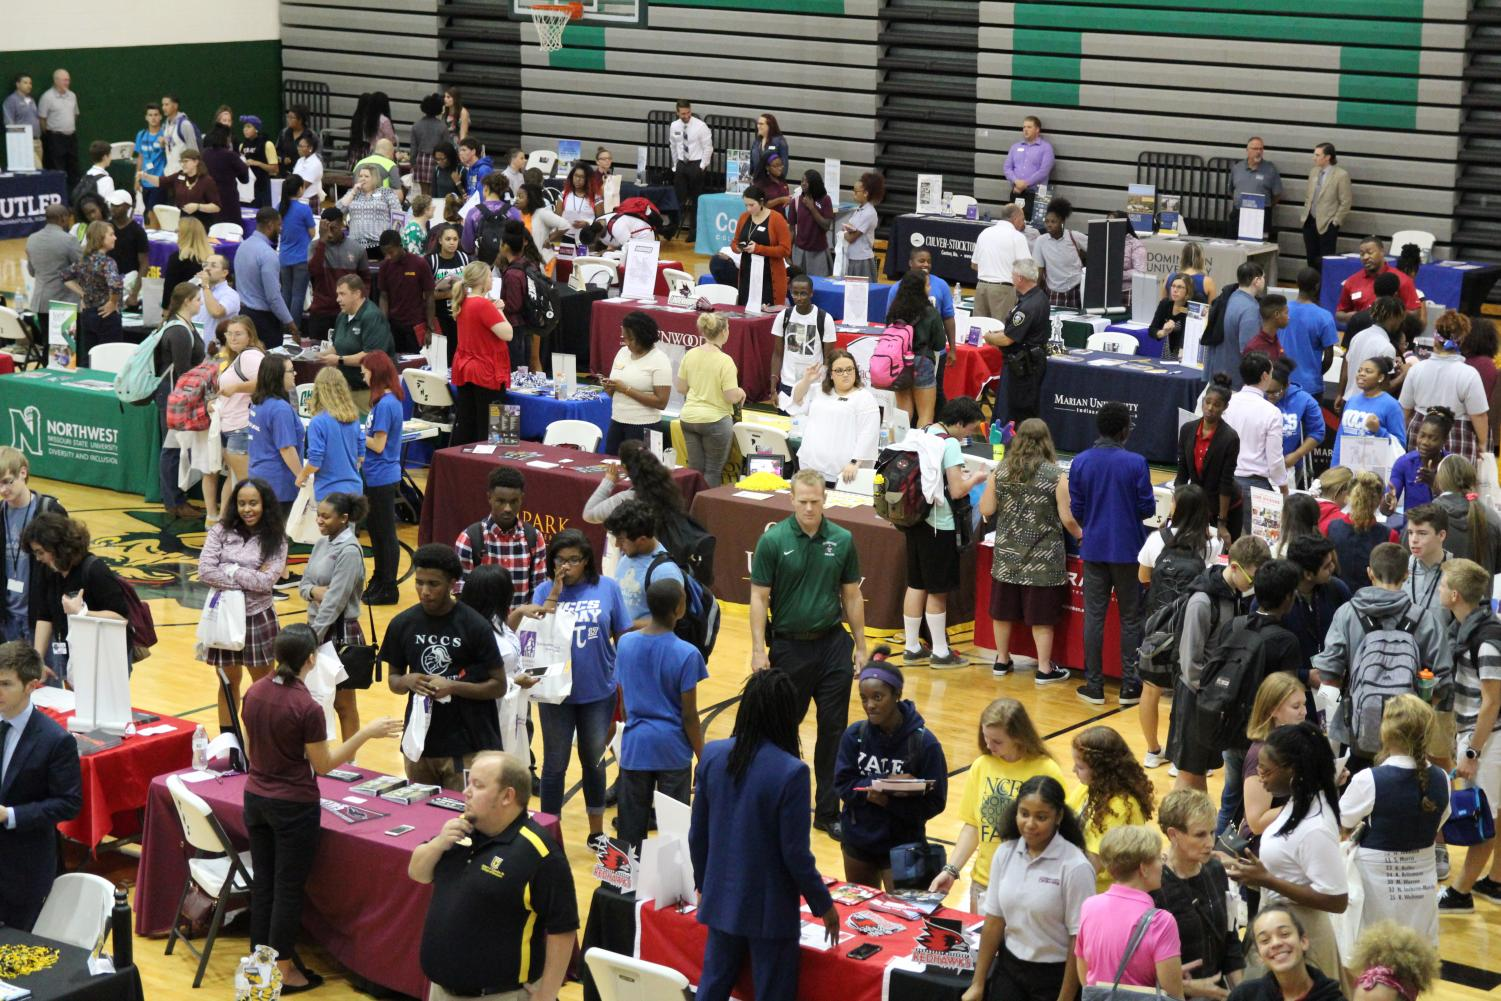 Pattonville High School hosted the North County College Fair on Thursday, Sept. 20. More than 80 post-secondary options for students attended the event.